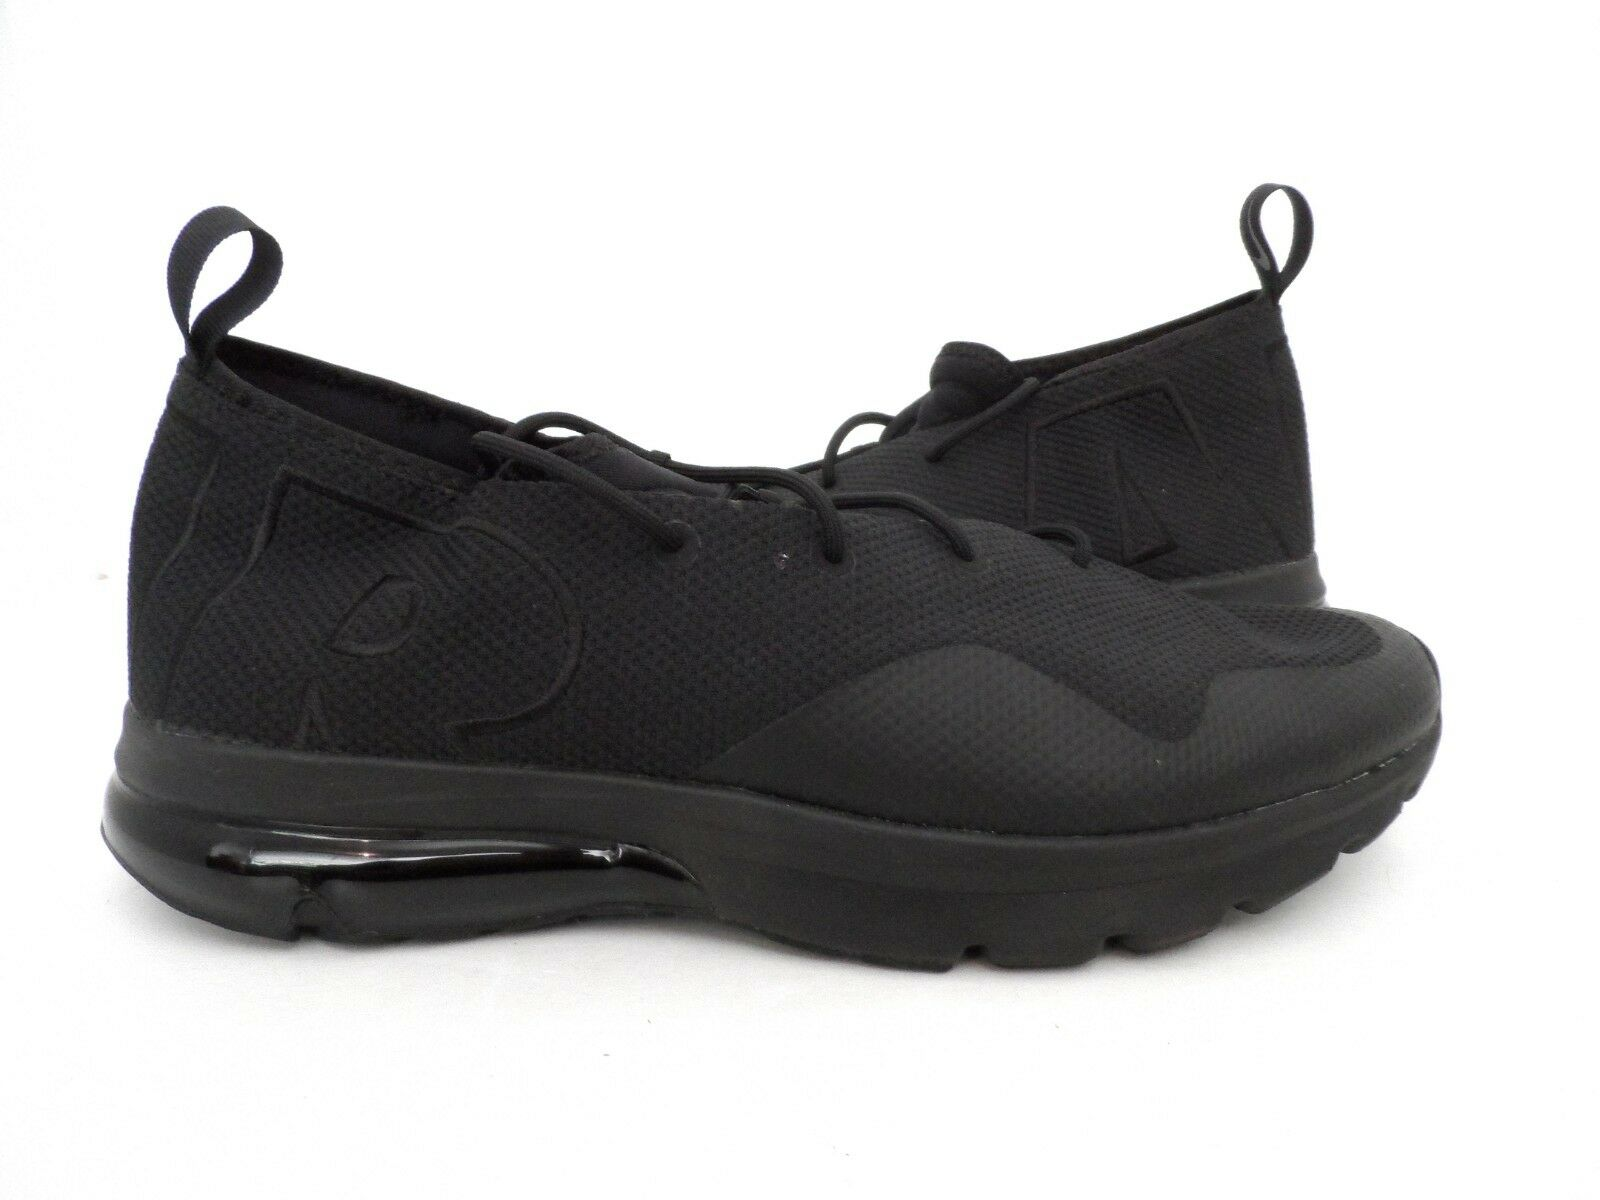 Nike Men's Air Max Size Flair 50 Running Shoes Black Size Max 12 622ab7